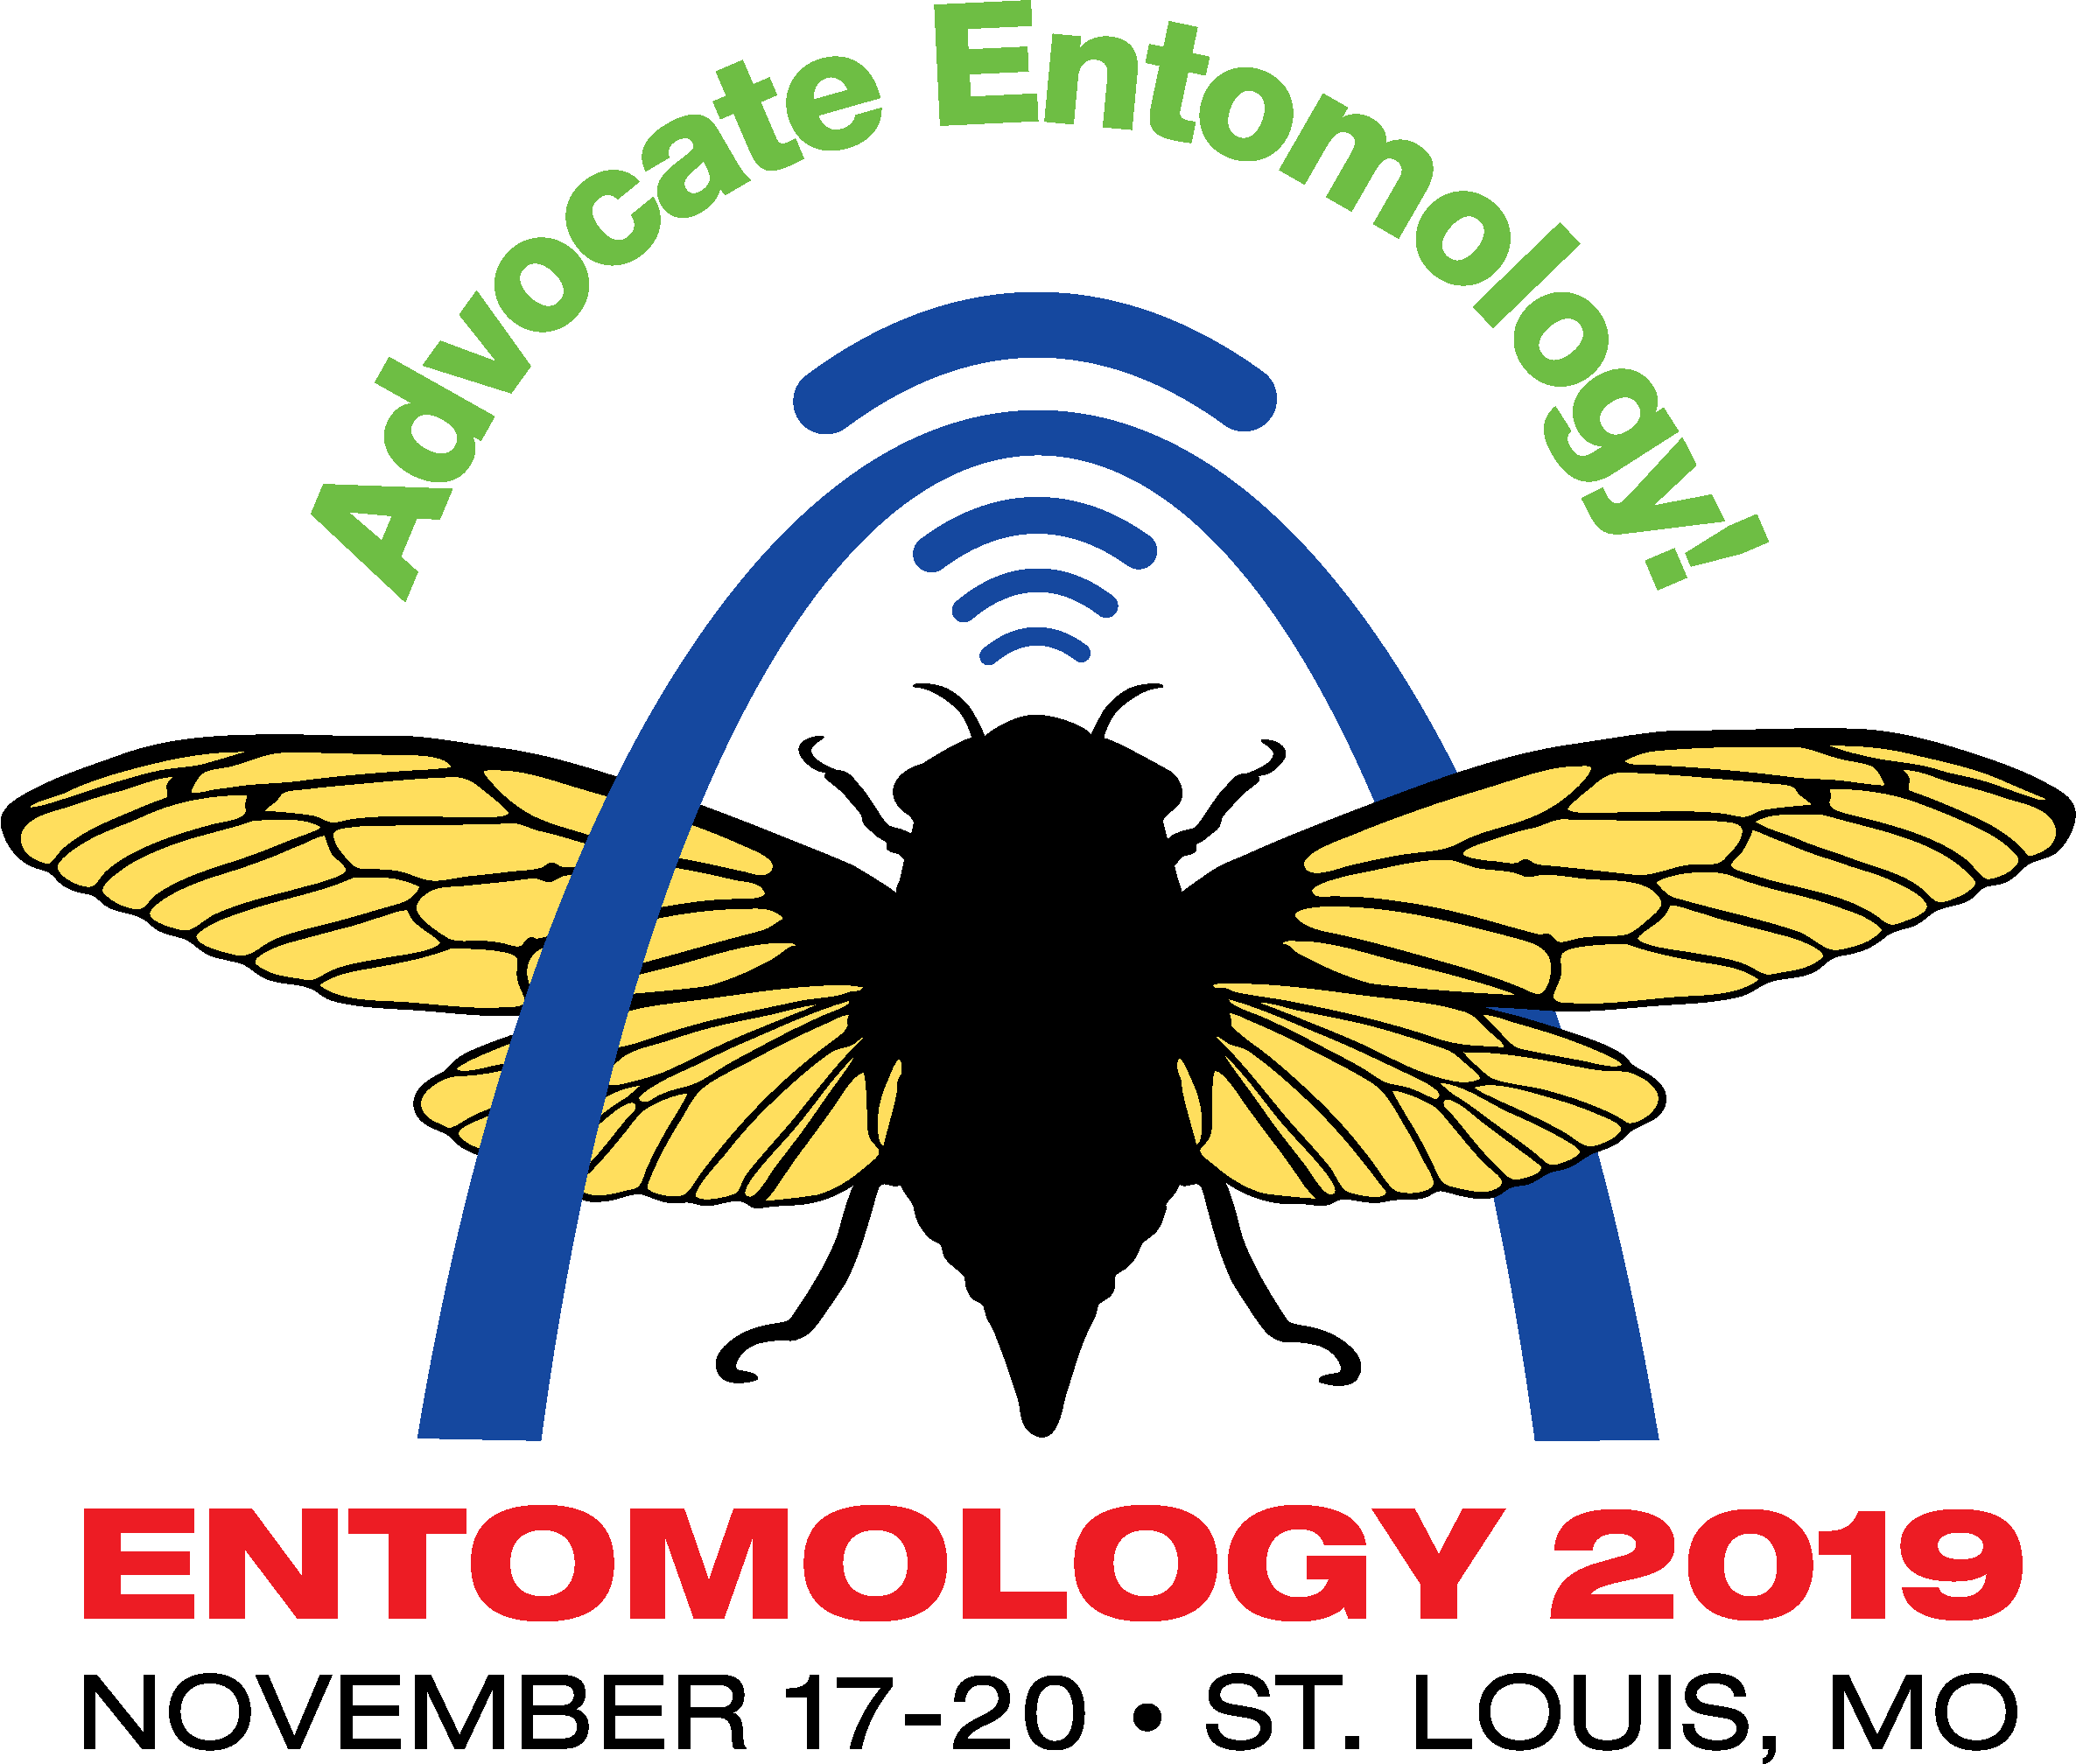 Entomology 2019: Advocate Entomology